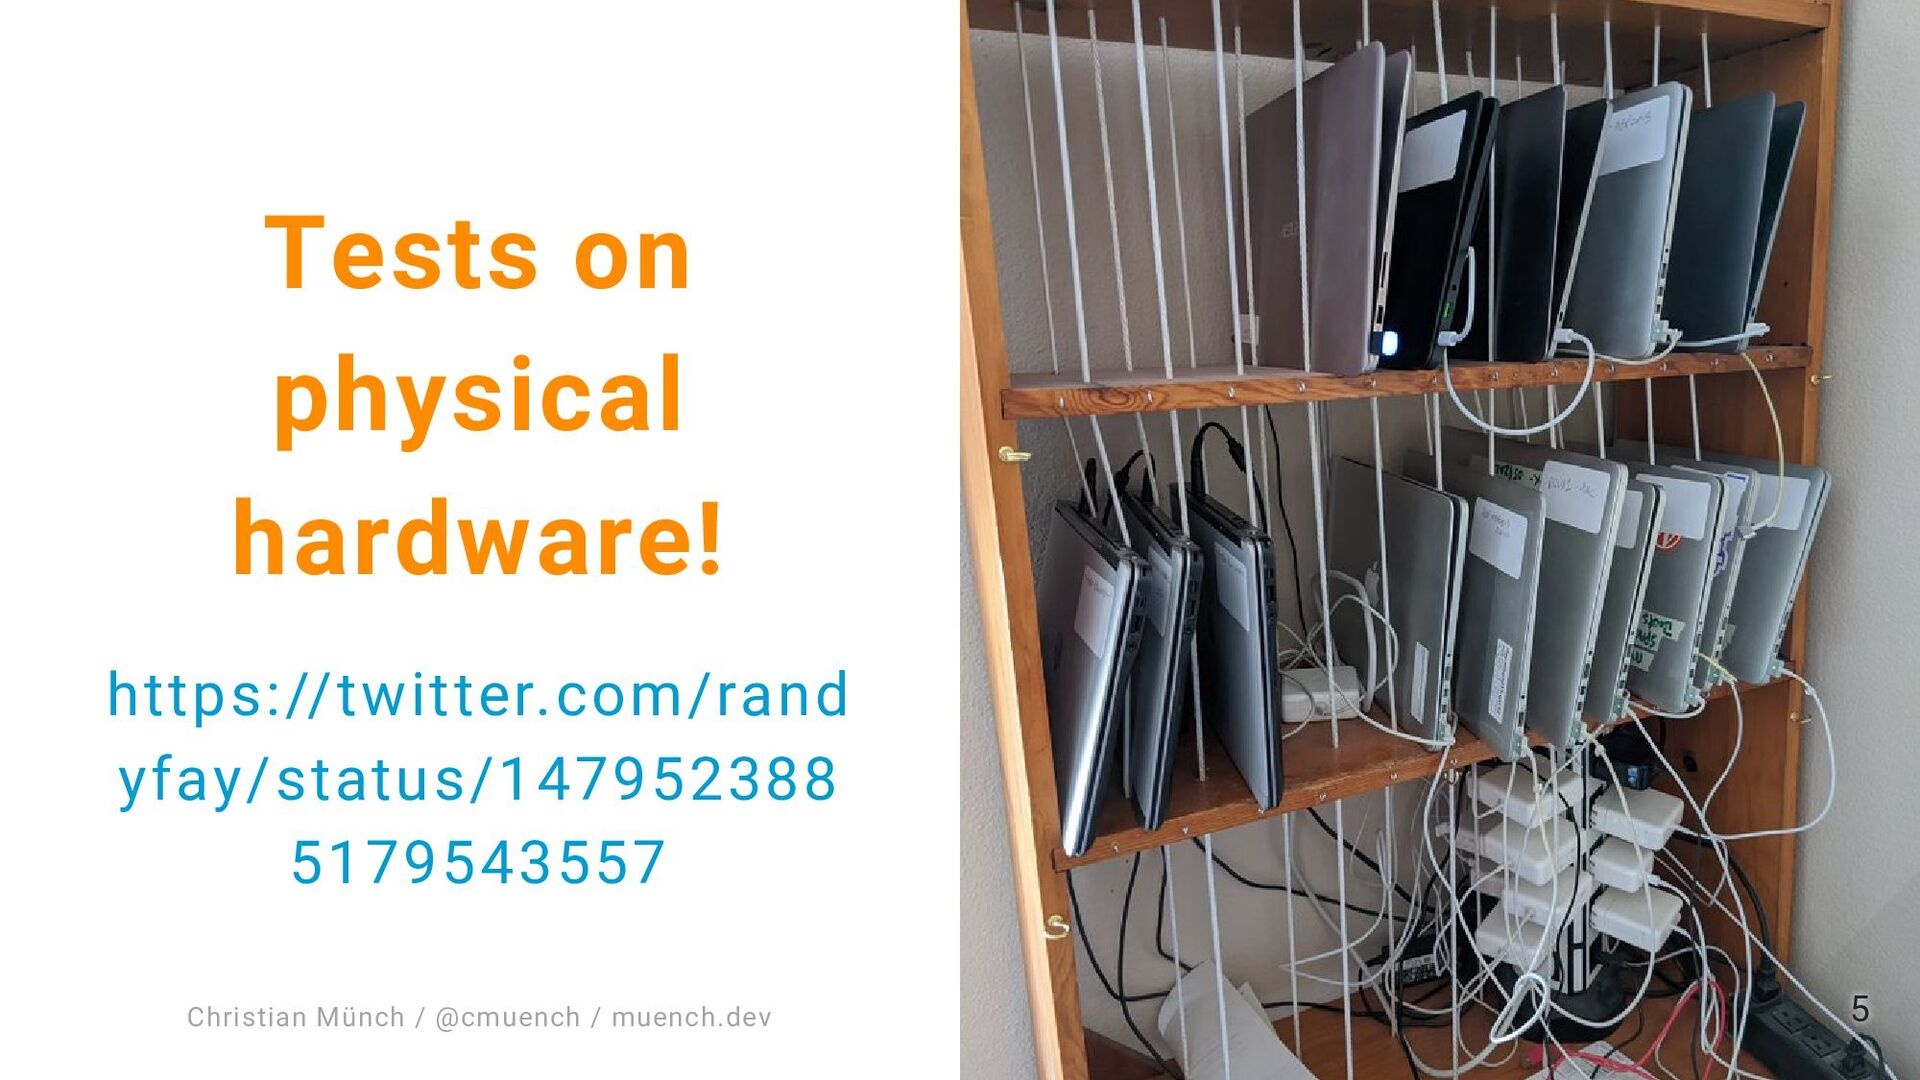 index.php <?php require_once 'vendor/autoload.p...